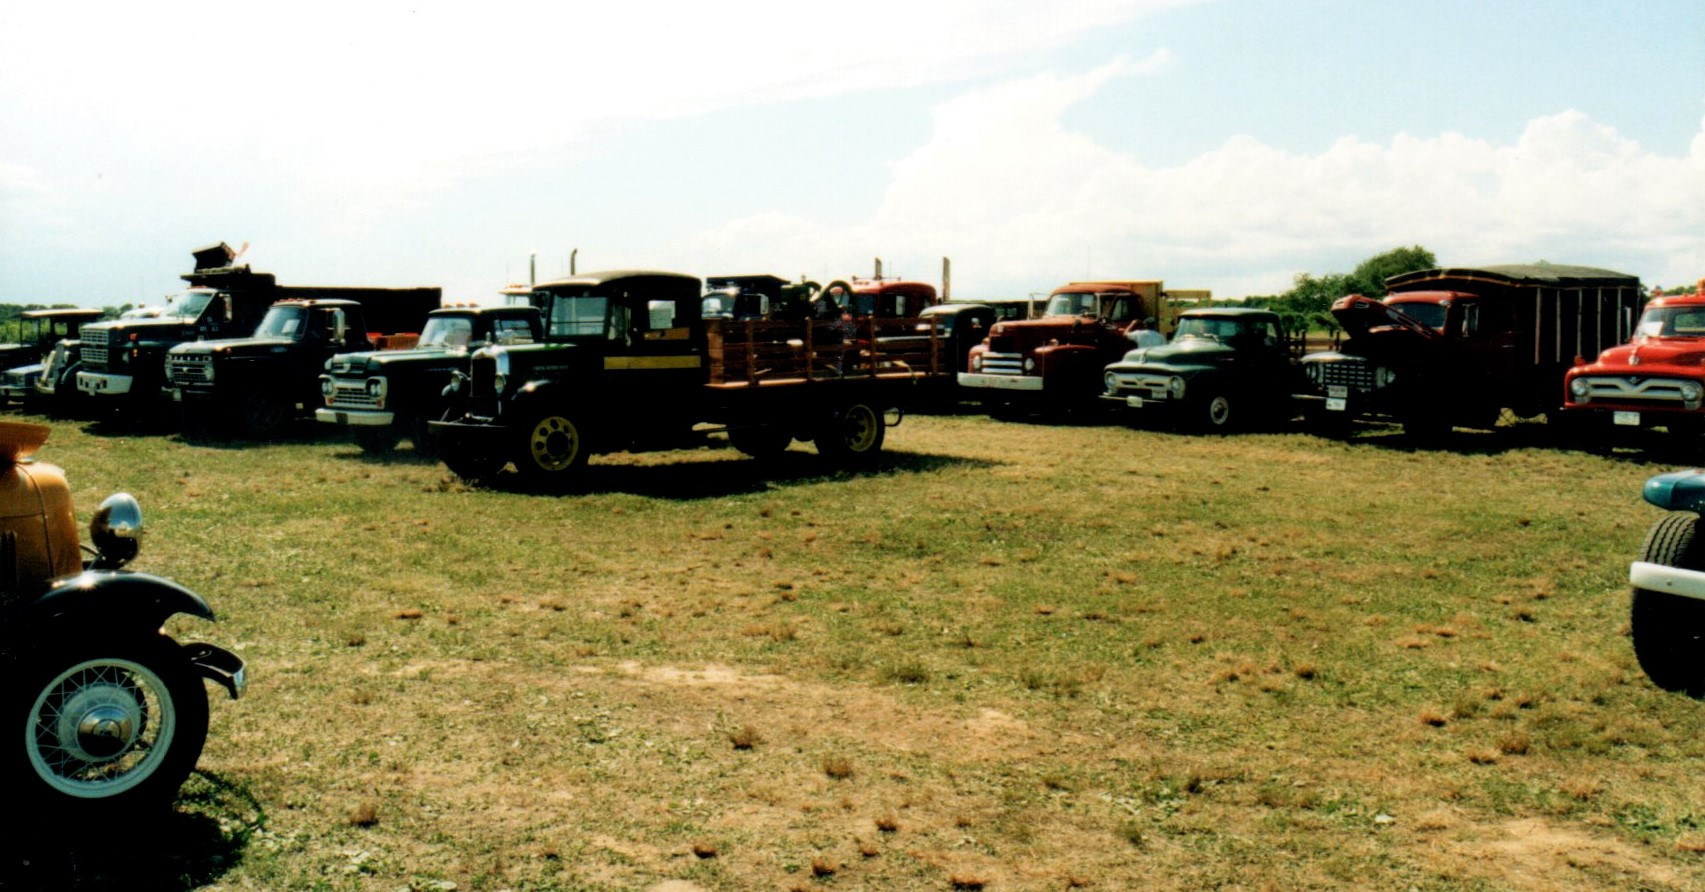 Field of show trucks